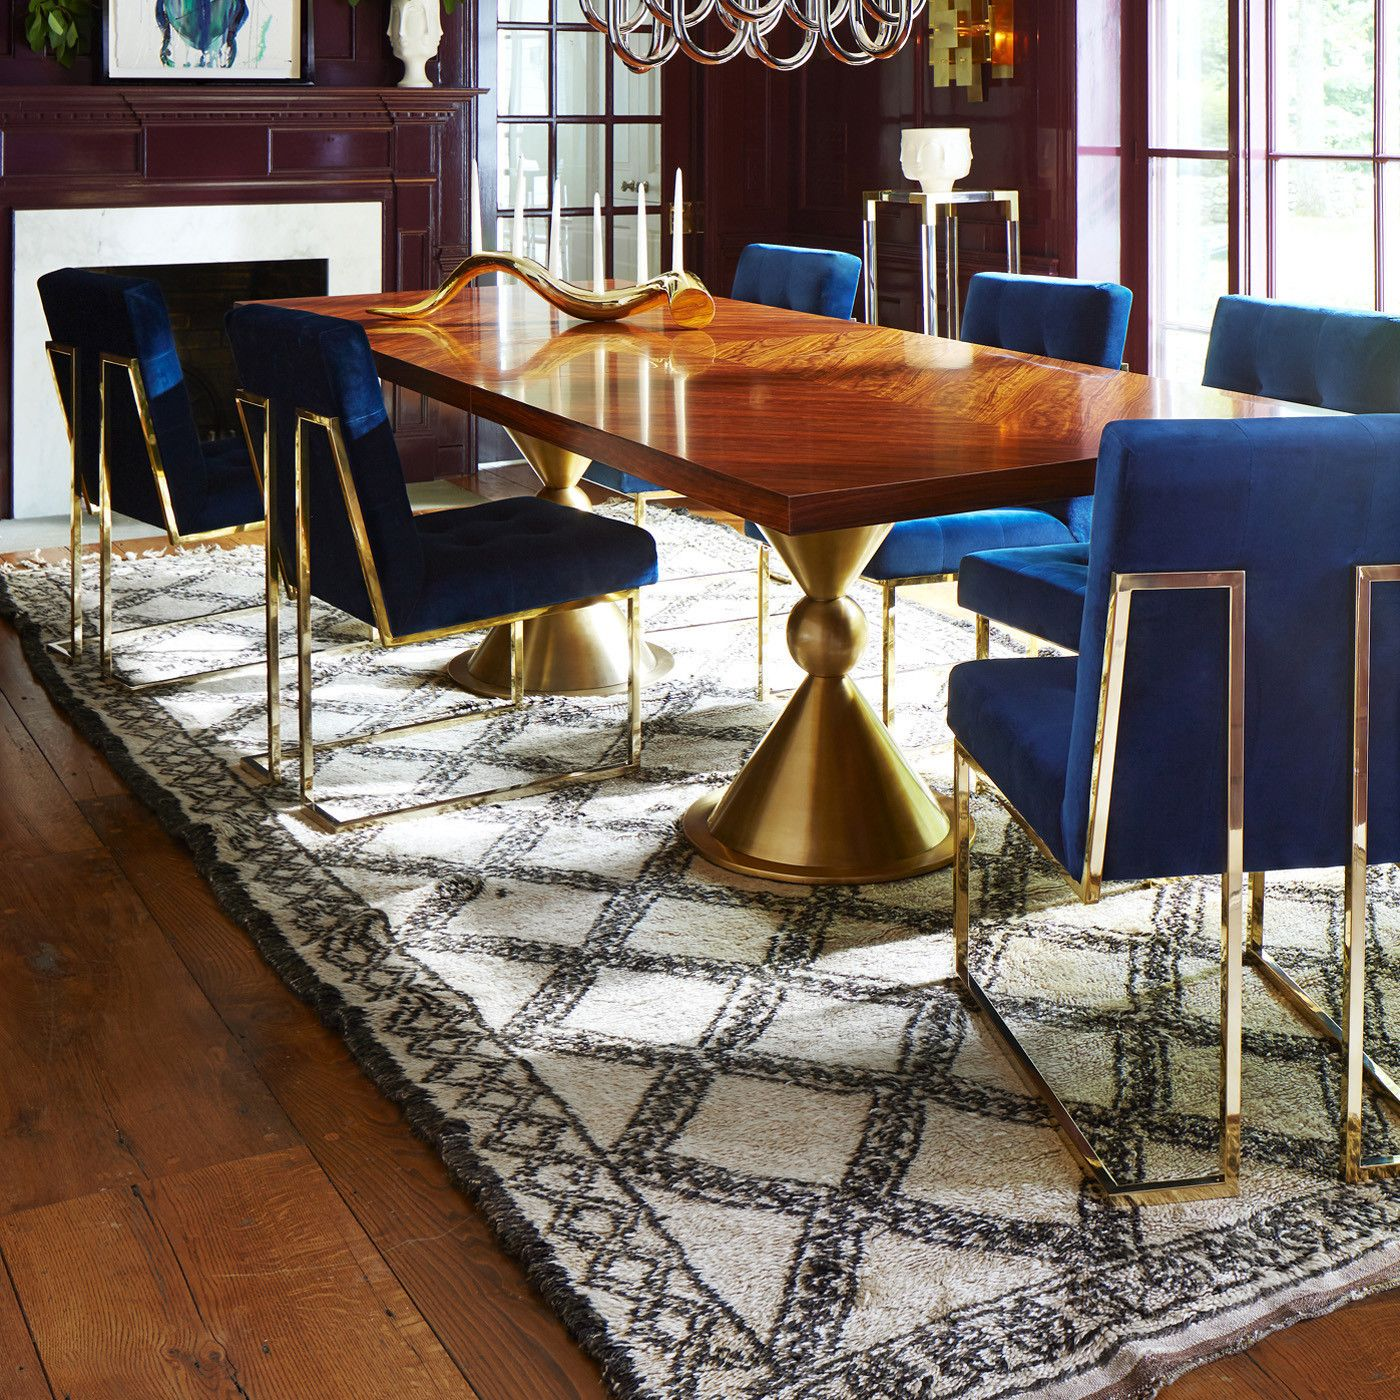 Our Bestseller By Jonathan Adler Pared Down Geometry In Polished